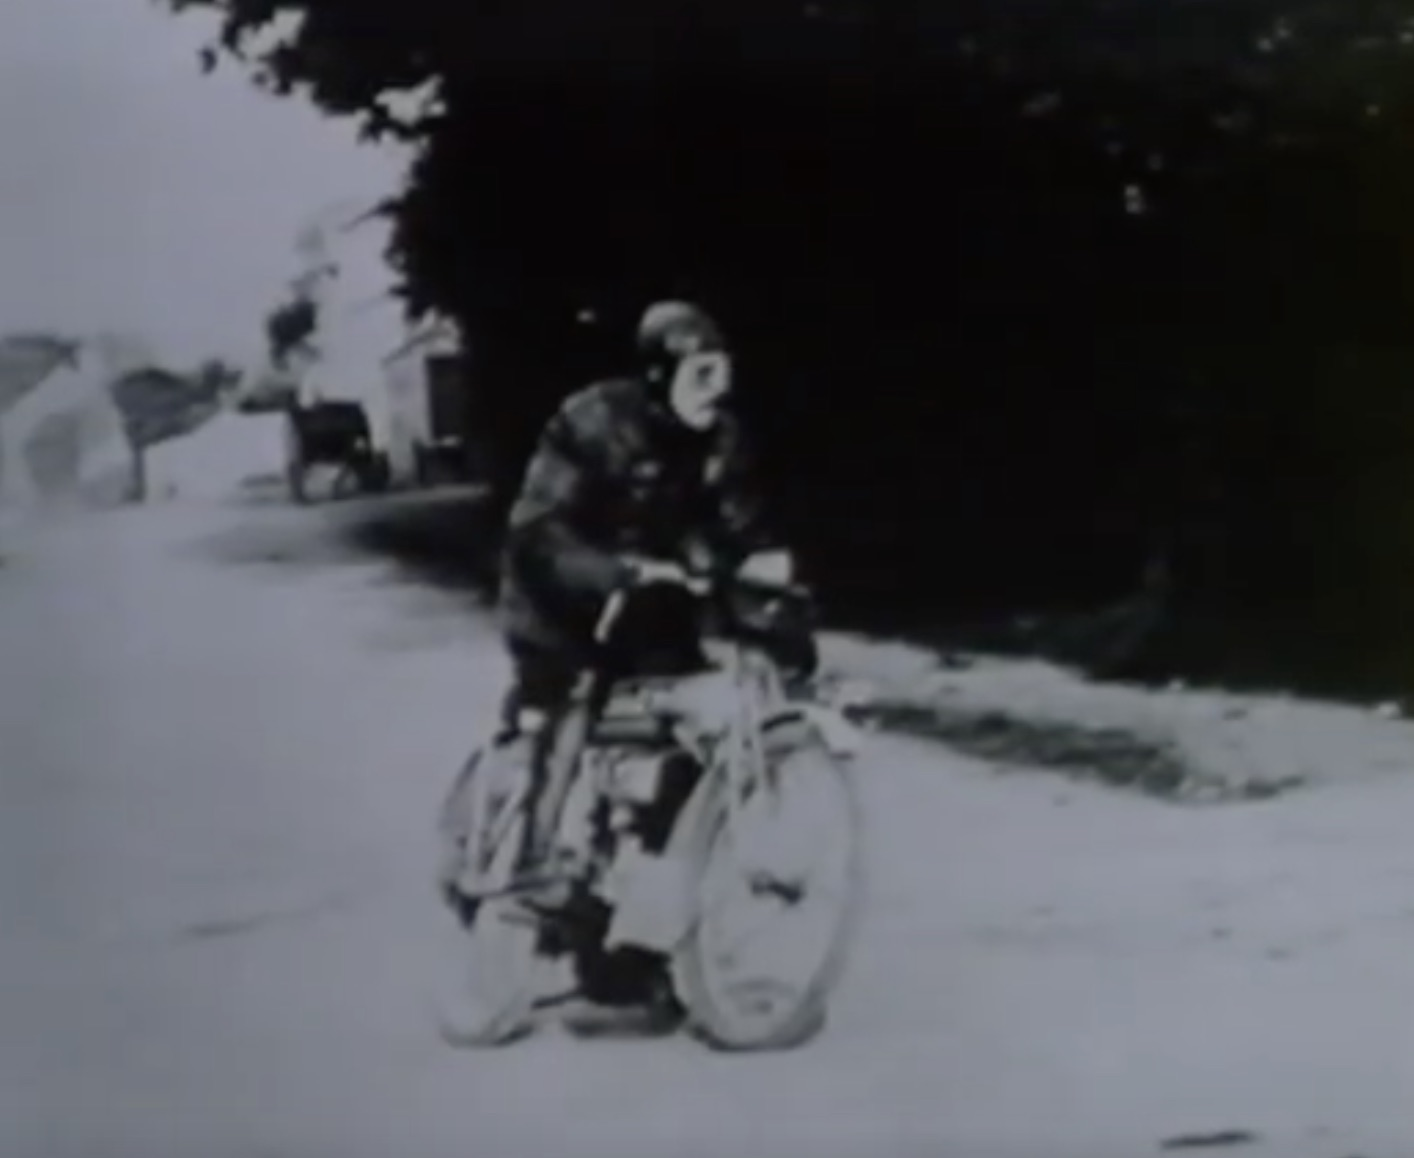 This Day In History: The Isle Of Man TT Race Is First Run In 1907